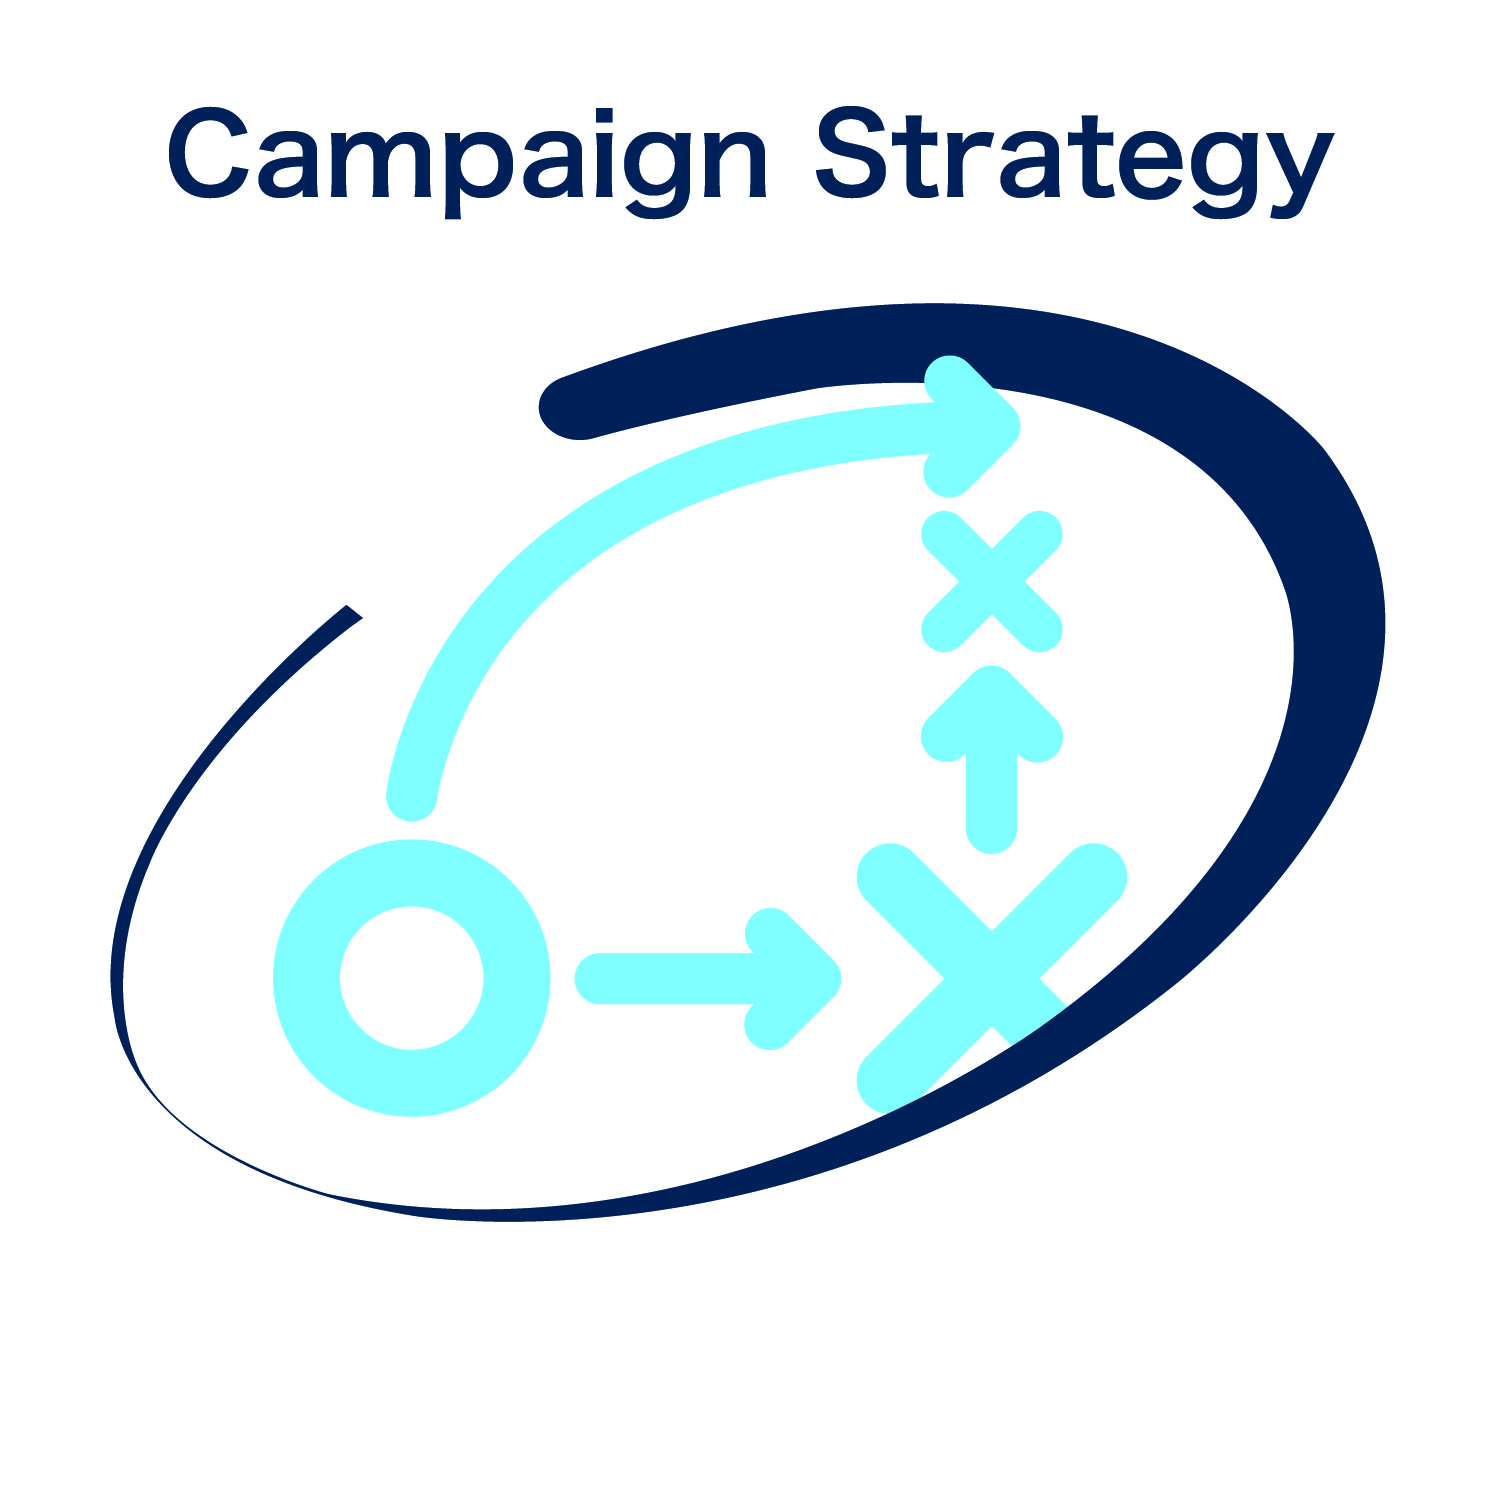 Let us develop the optimal customer acquisition strategy that builds brand awareness, increases market share and maximizes profitability.